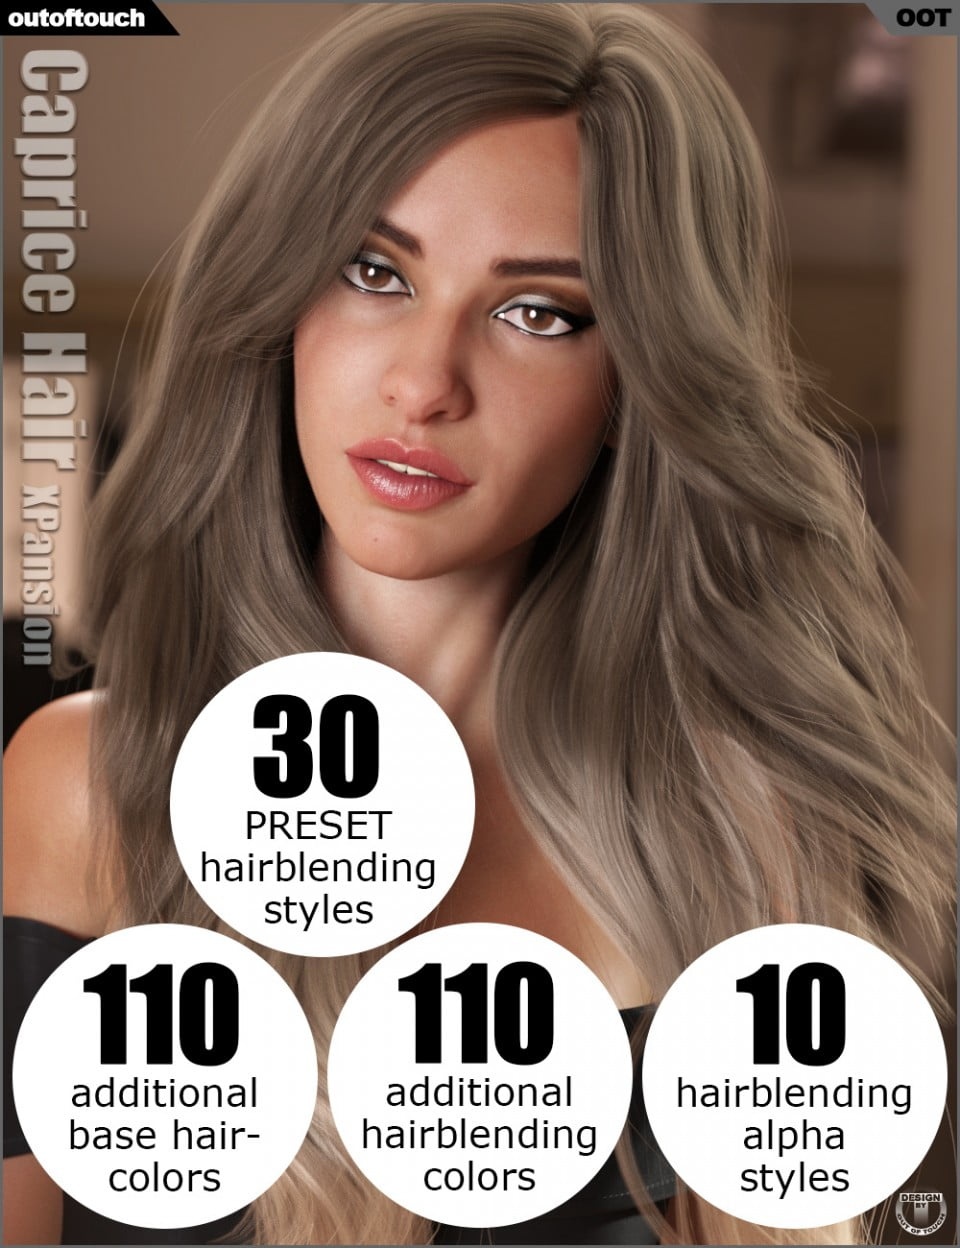 OOT Hairblending 2.0 Texture XPansion for Caprice Hair